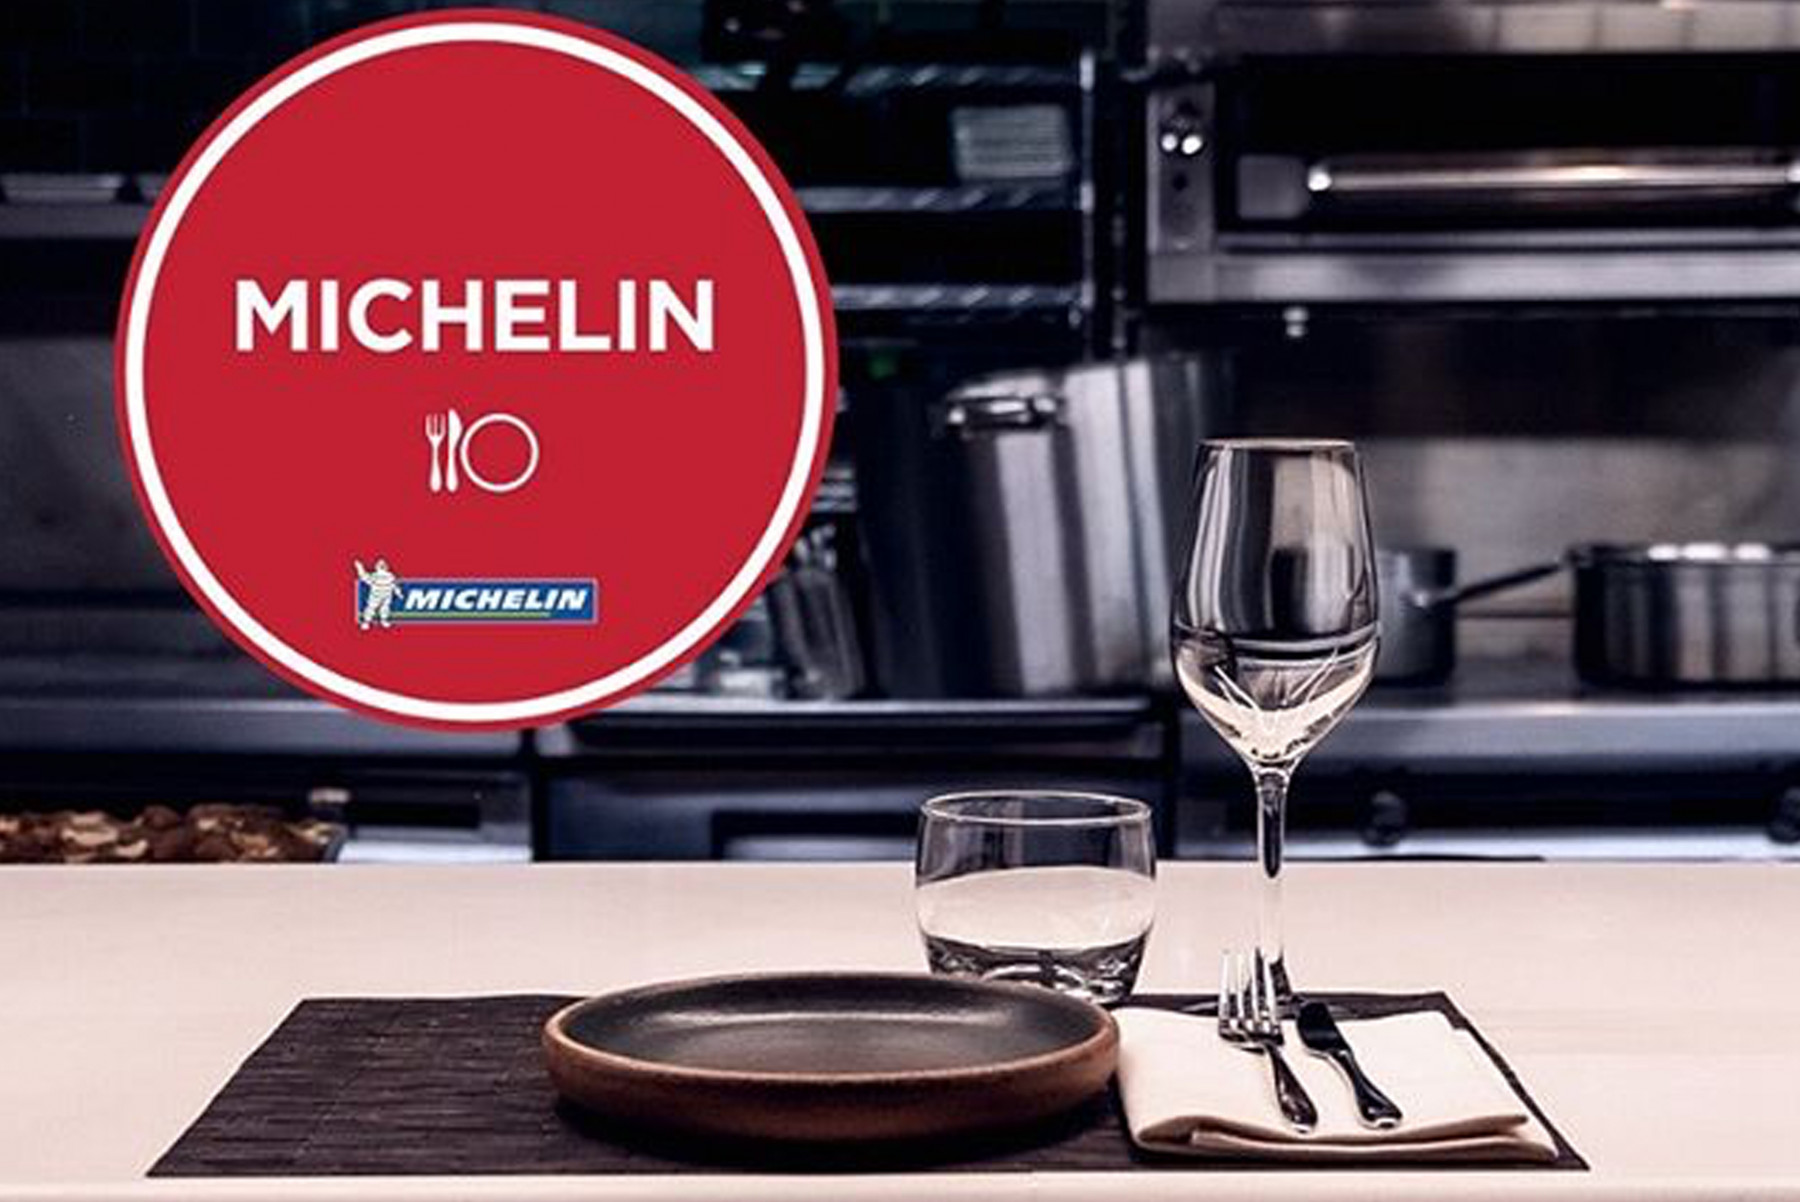 Michelin Full Plate recognition for Ardyn NYC, a recent NYCHG destination